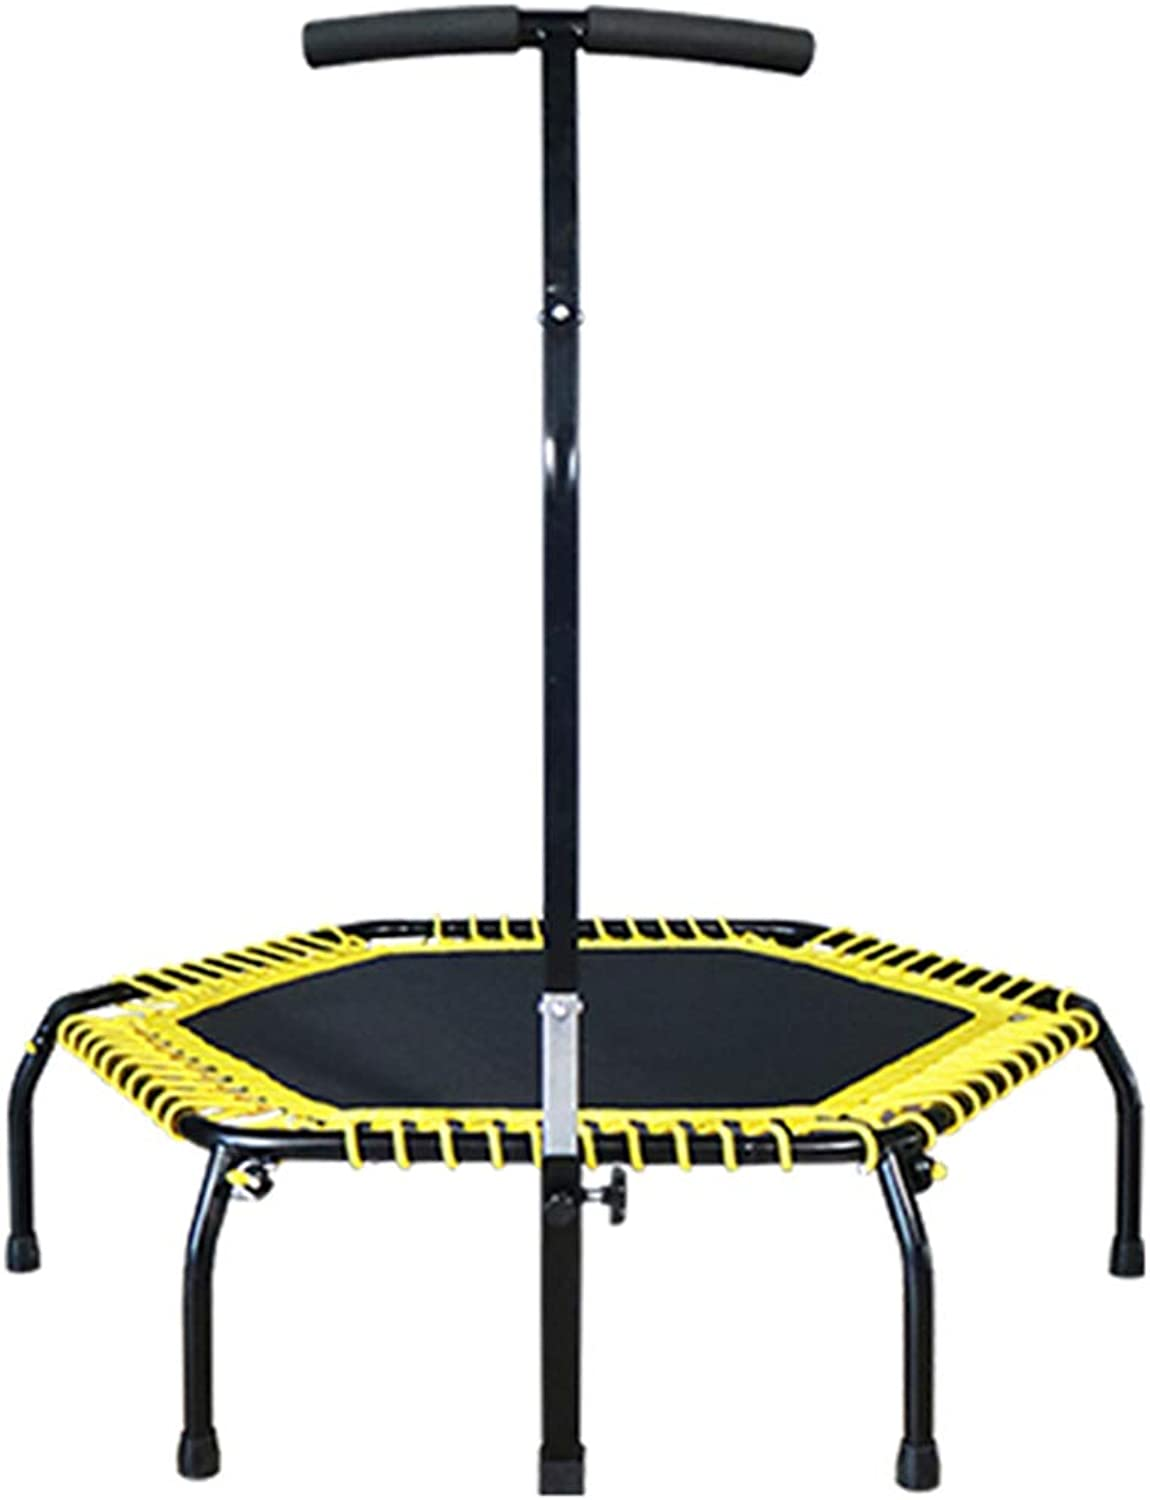 Trampoline Body Sculpture Aerobic Bouncer Fitness Mini Hexagon Bungee Bed with Adjustable Handle Bouncing Weight Loss Device for Outdoor and Indoor Use